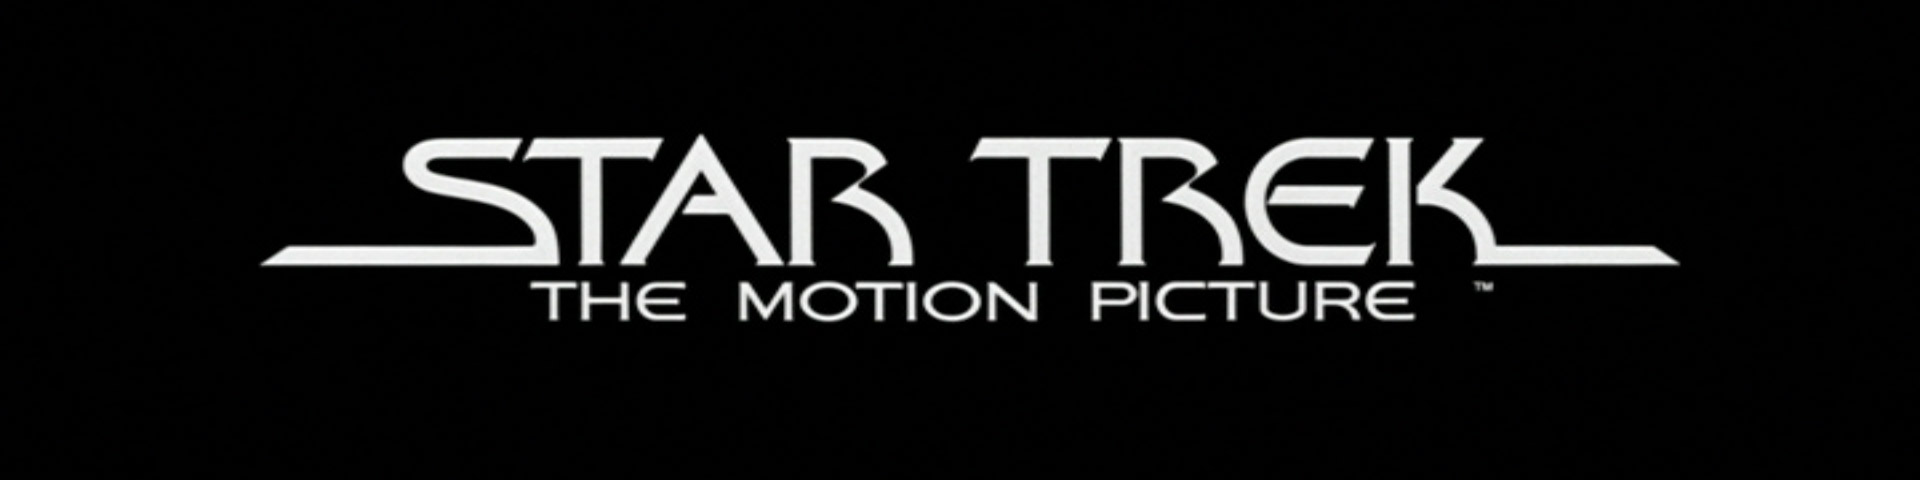 © 1979 Paramount Pictures – The Star Trek movie logo as seen in the title sequences of the original motion picture.